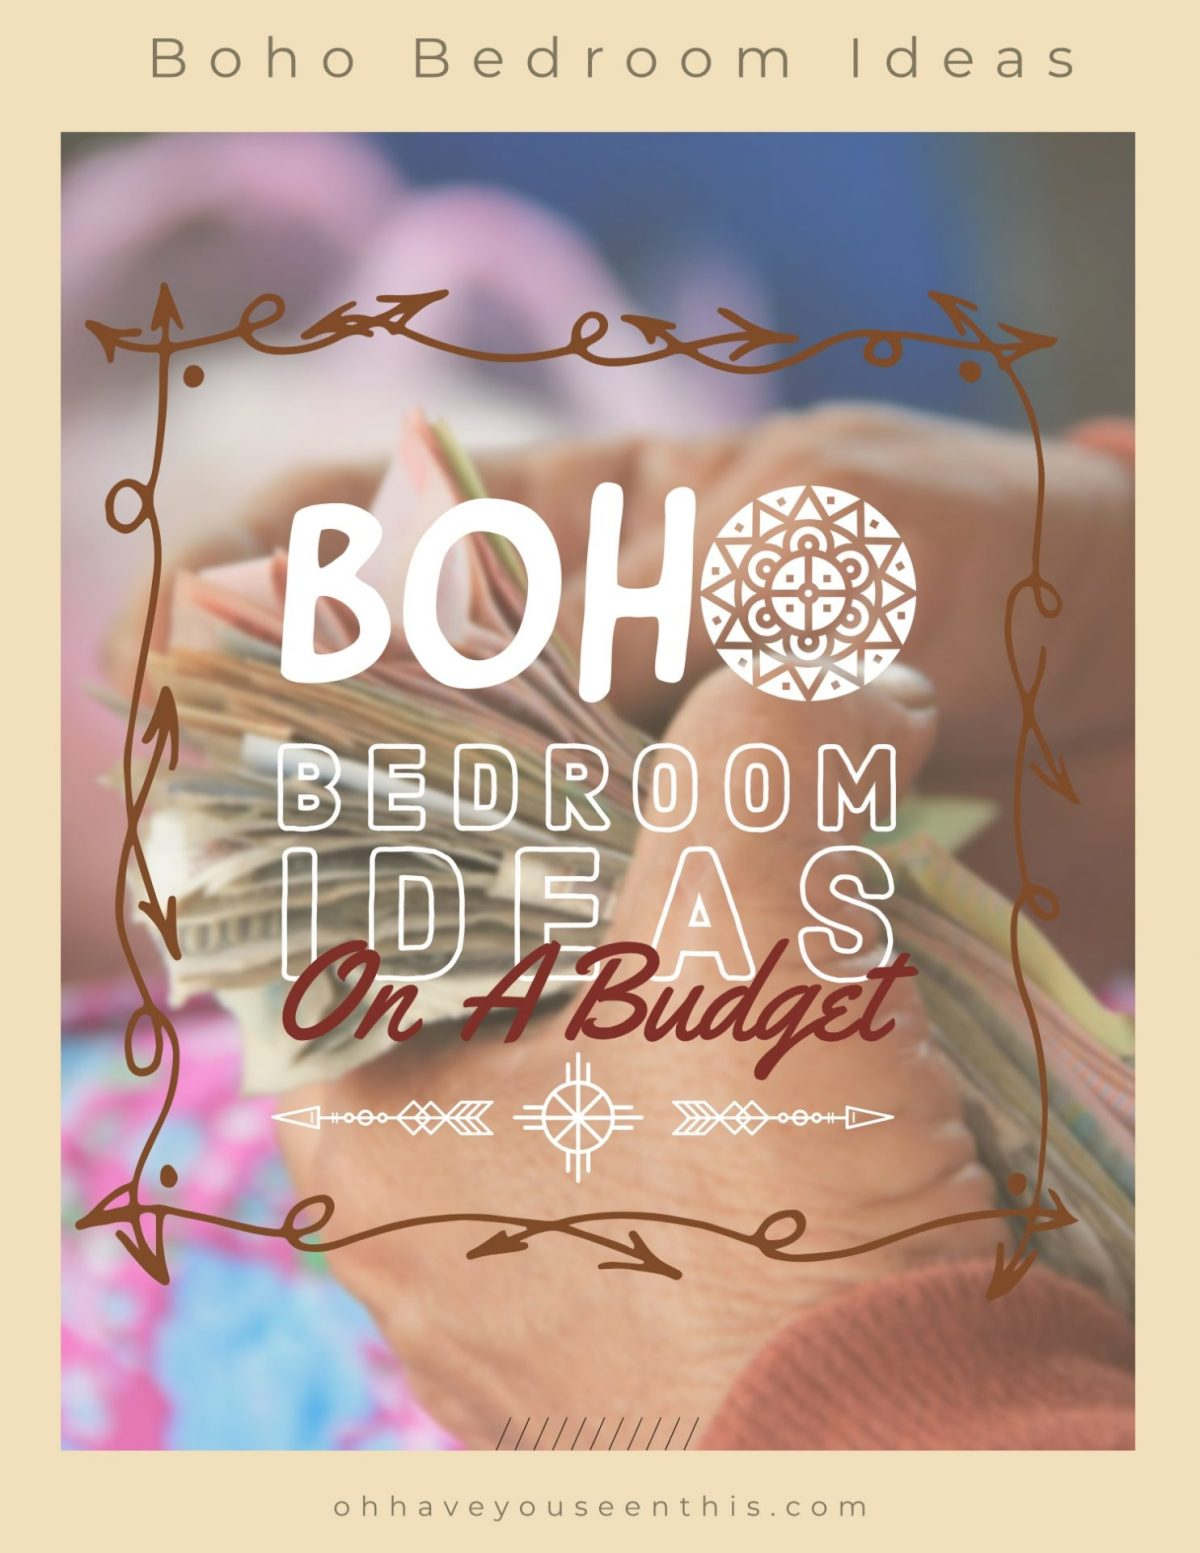 Boho bedroom ideas on a budget